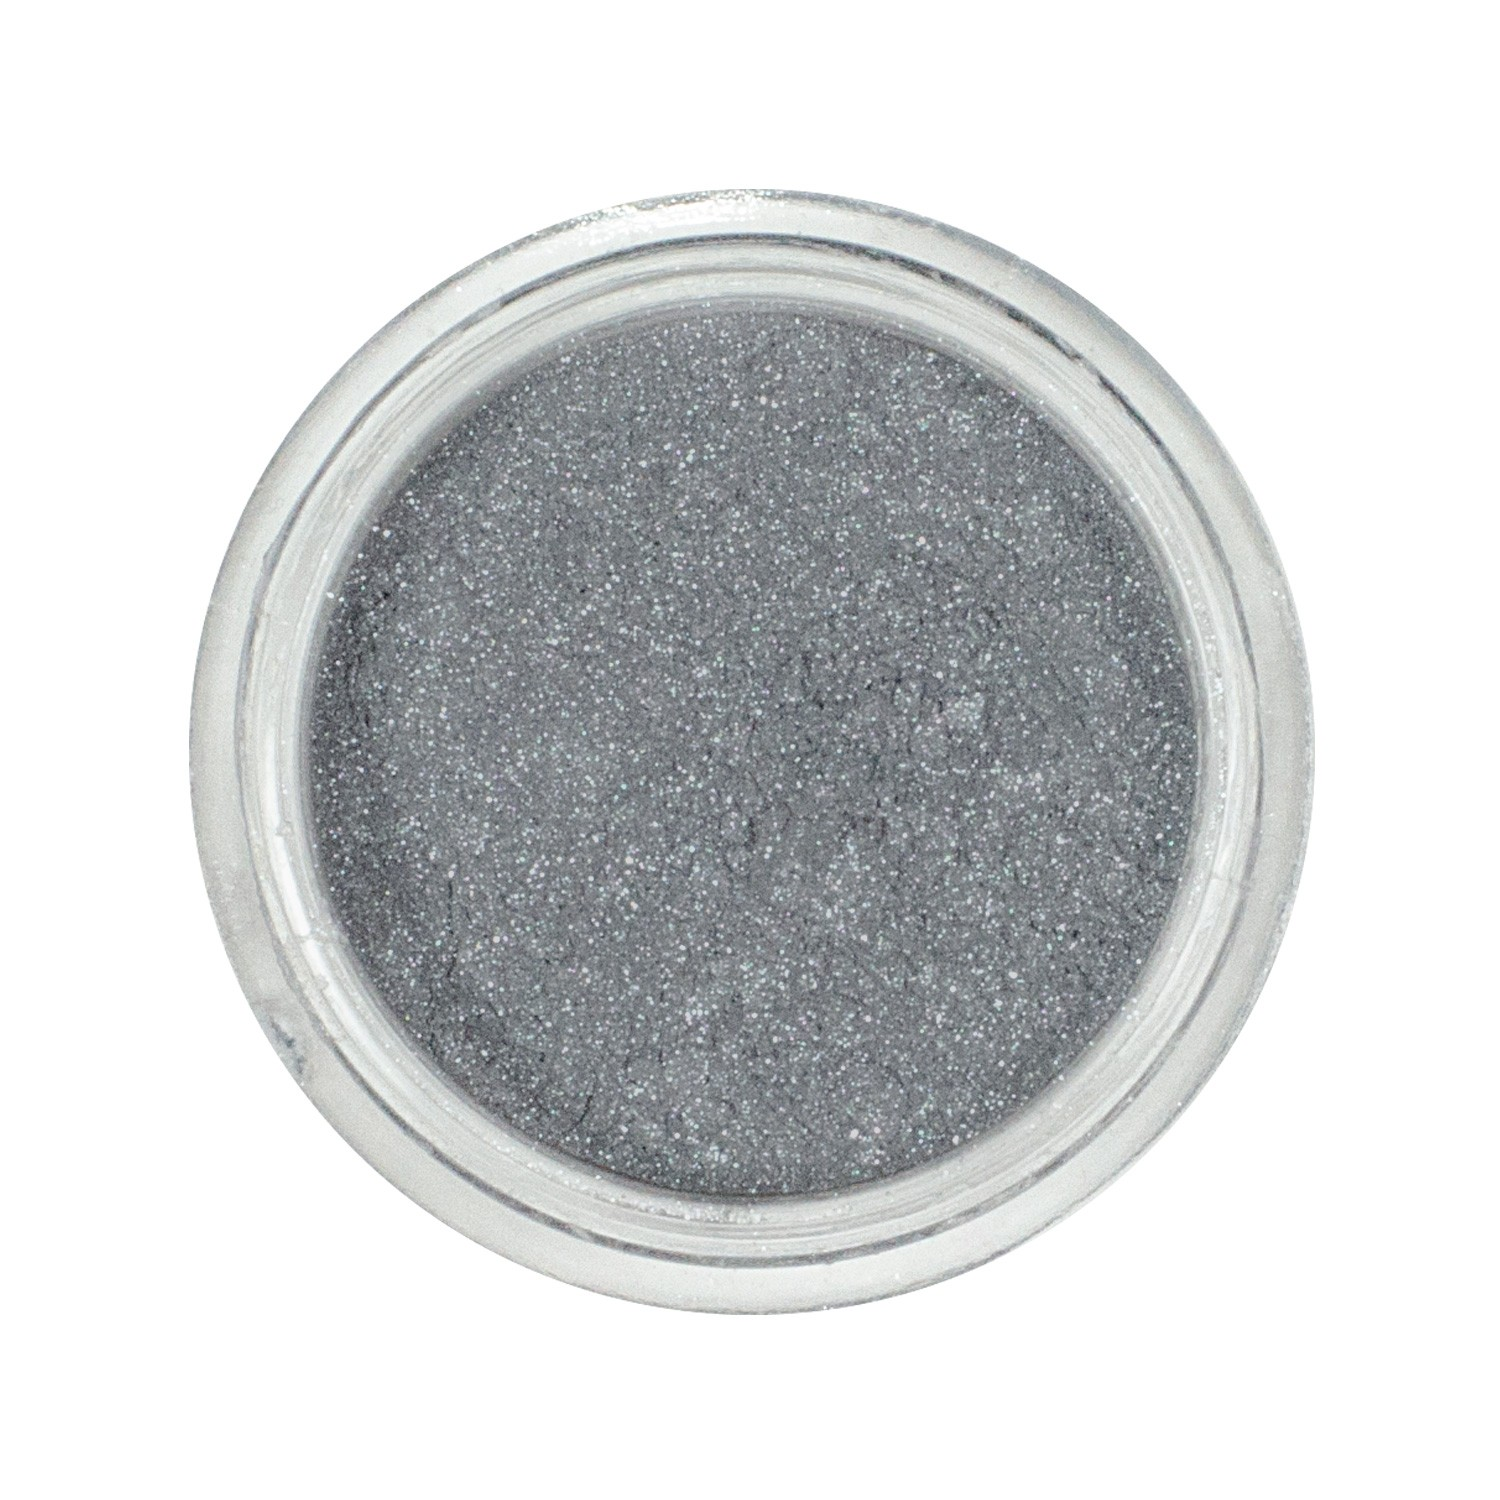 marsk mineral eyeshadow how to use